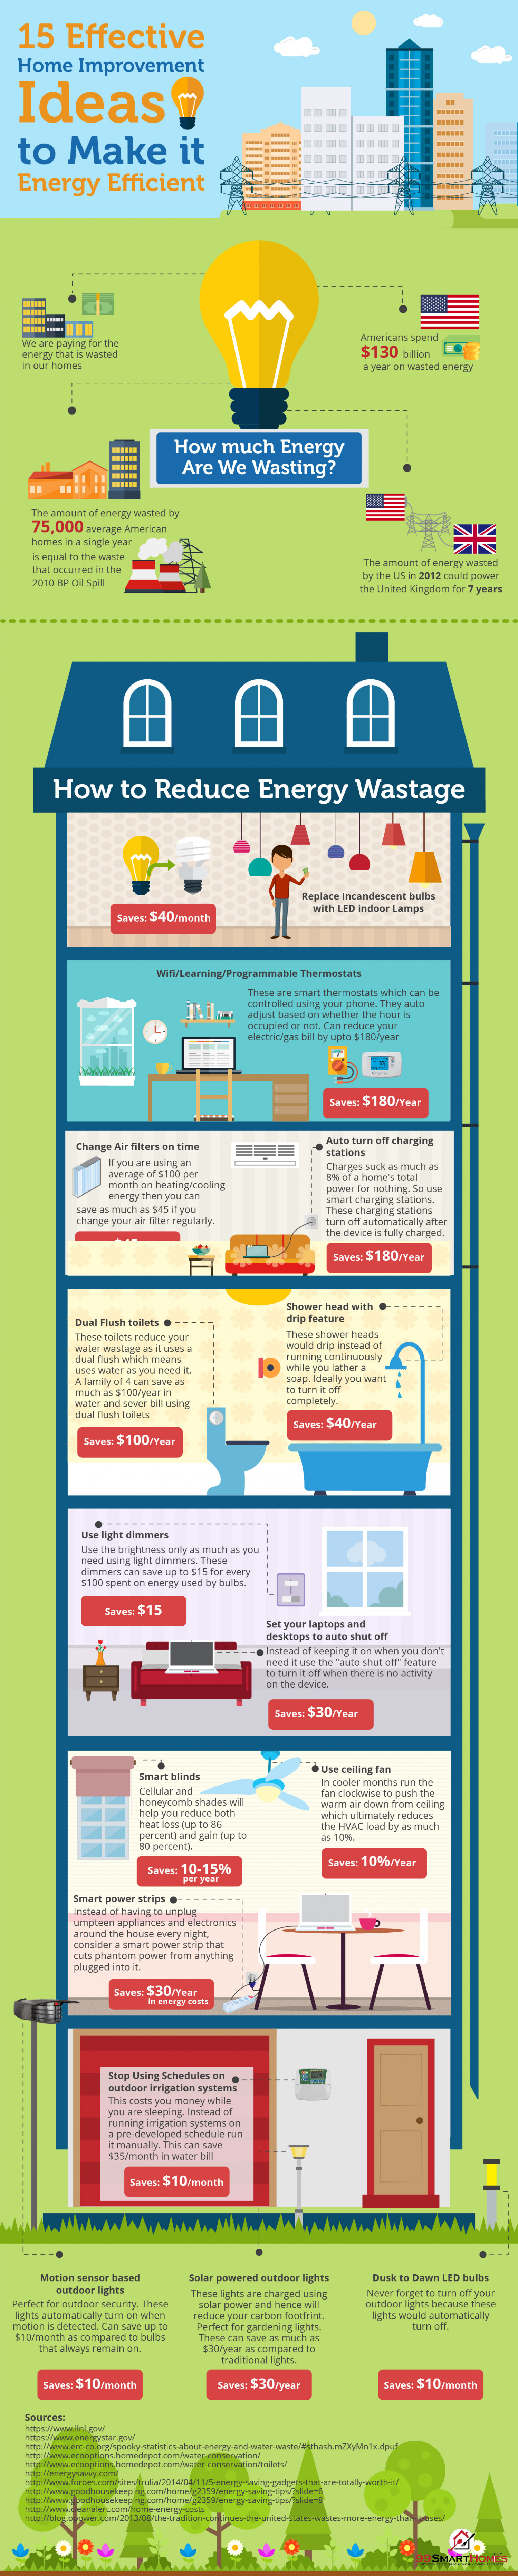 15 Ways to Make your Home Energy Efficient and Reduce Utility Bill Infographic